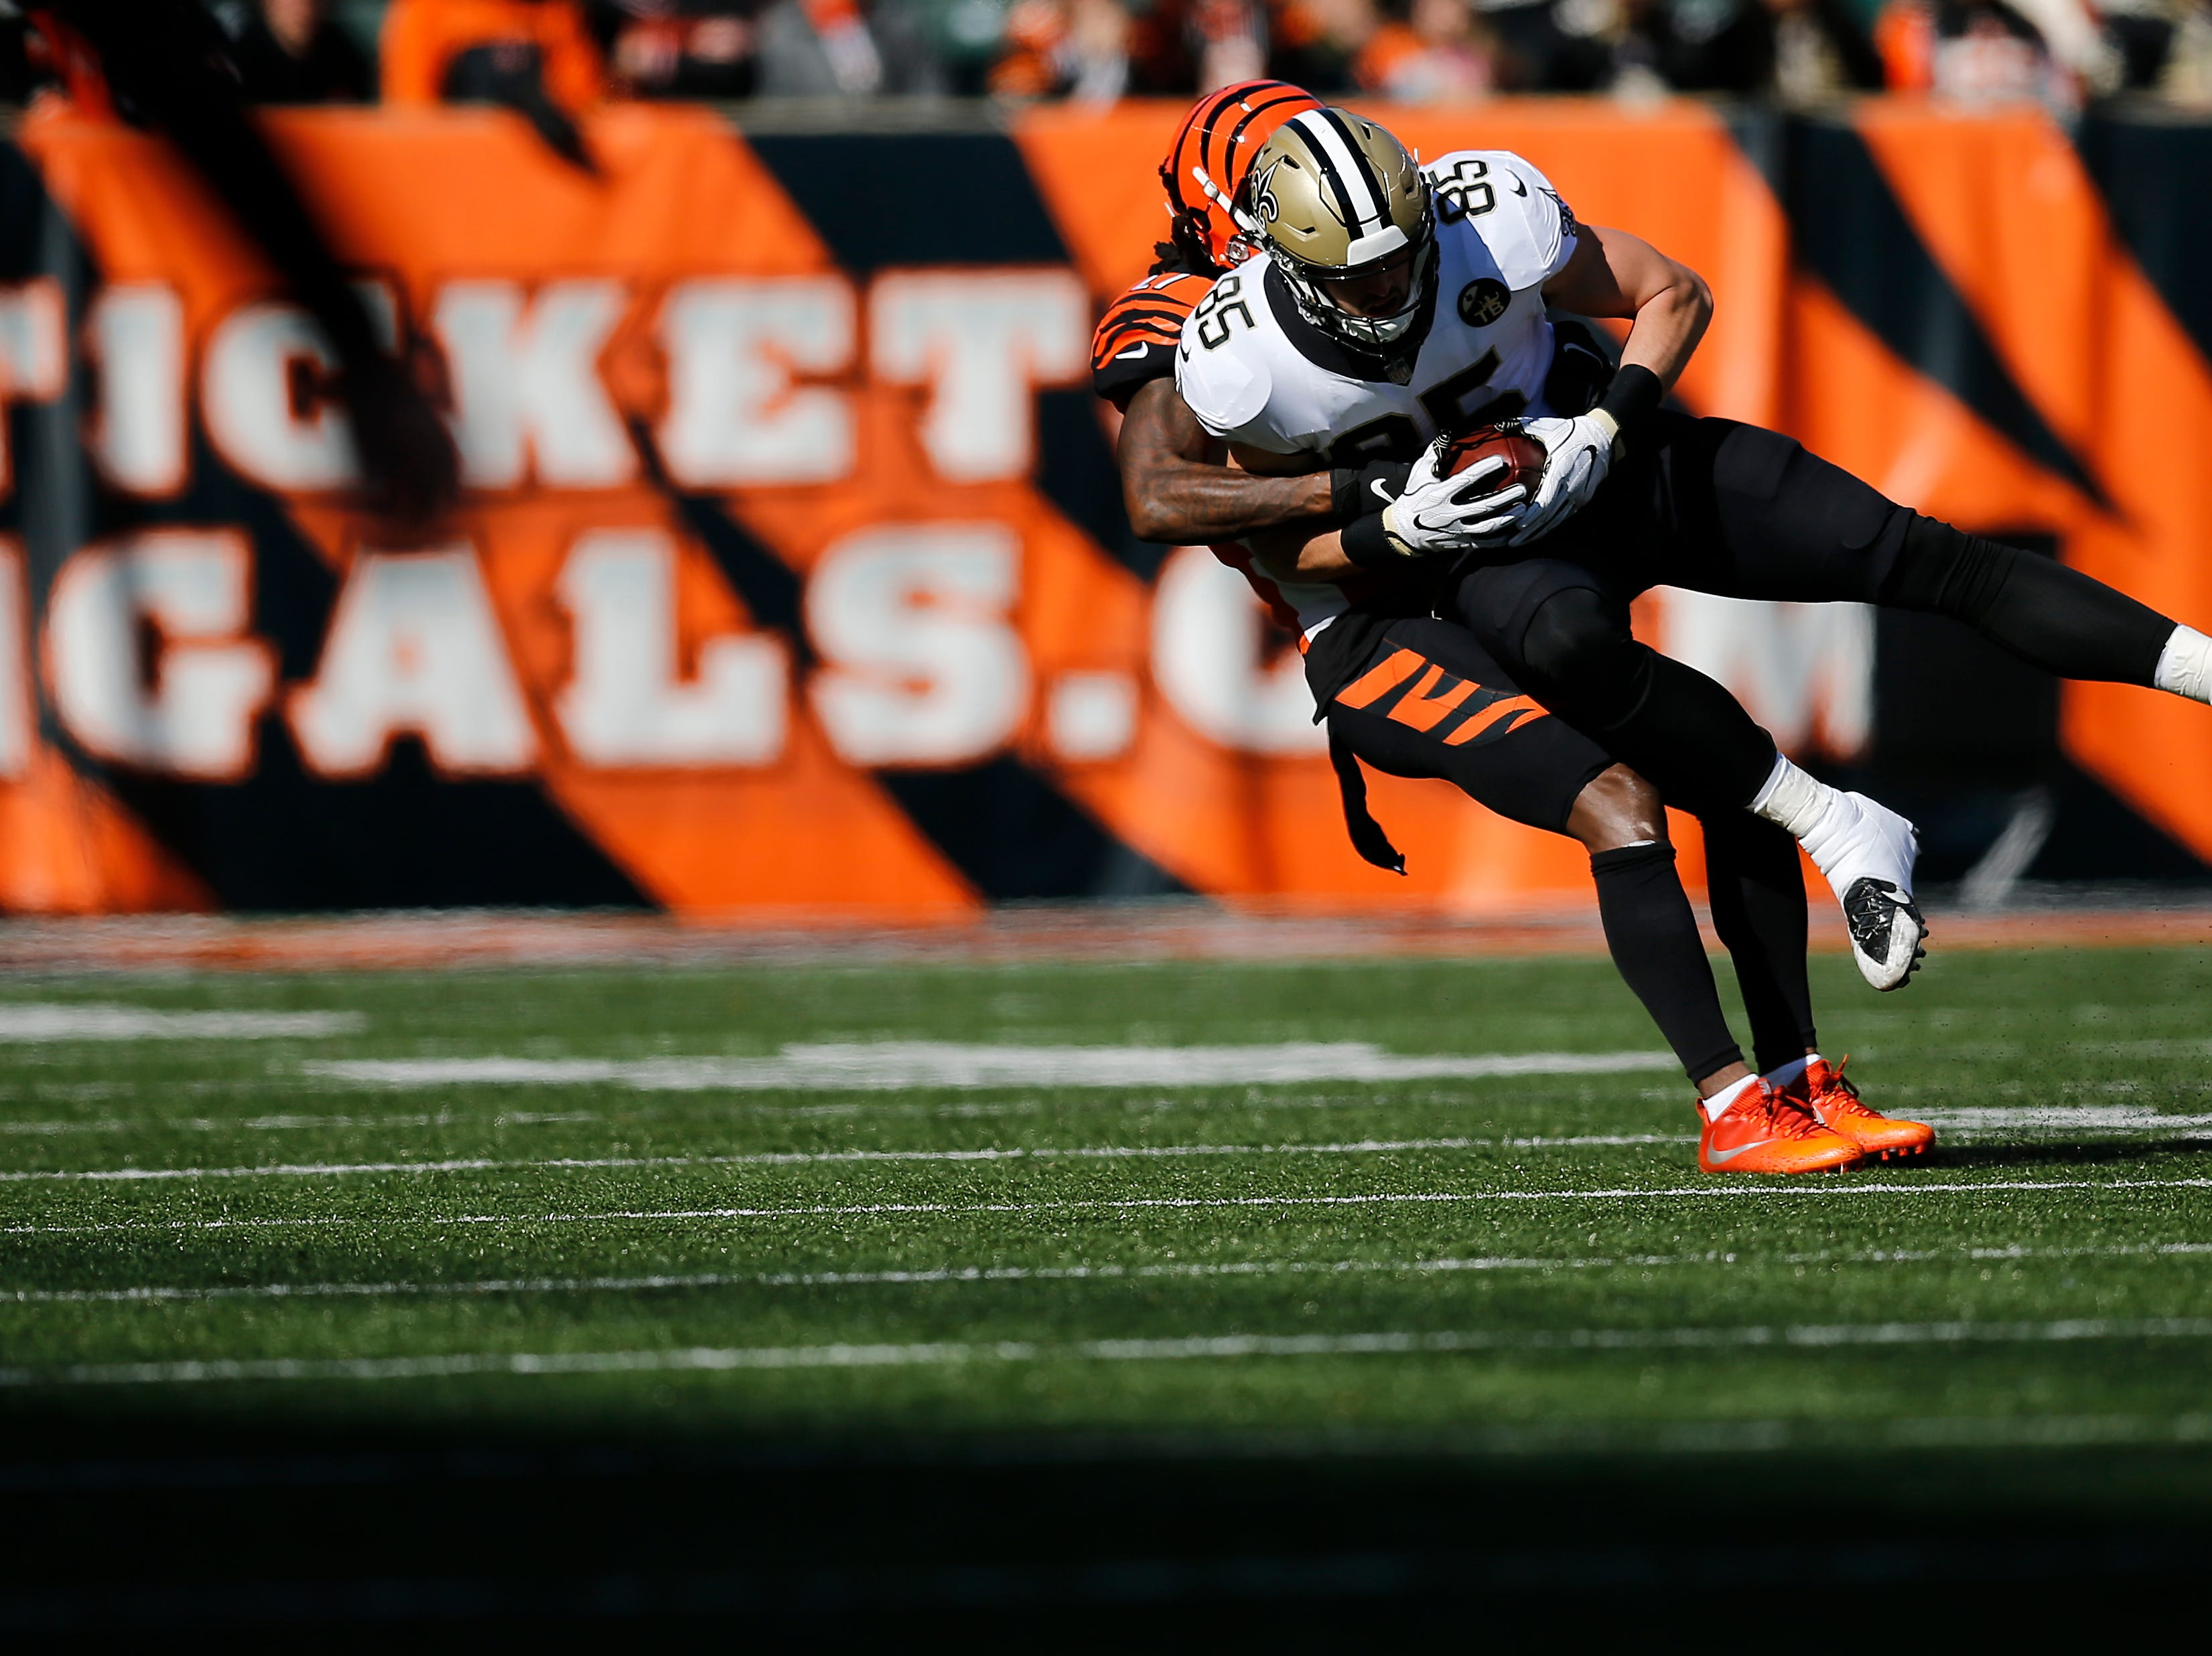 Cincinnati Bengals cornerback Dre Kirkpatrick (27) pulls down New Orleans Saints tight end Dan Arnold (85) after a catch in the first quarter of the NFL Week 10 game between the Cincinnati Bengals and the New Orleans Saints at Paul Brown Stadium in downtown Cincinnati on Sunday, Nov. 11, 2018. The Saints led 35-7 at halftime.